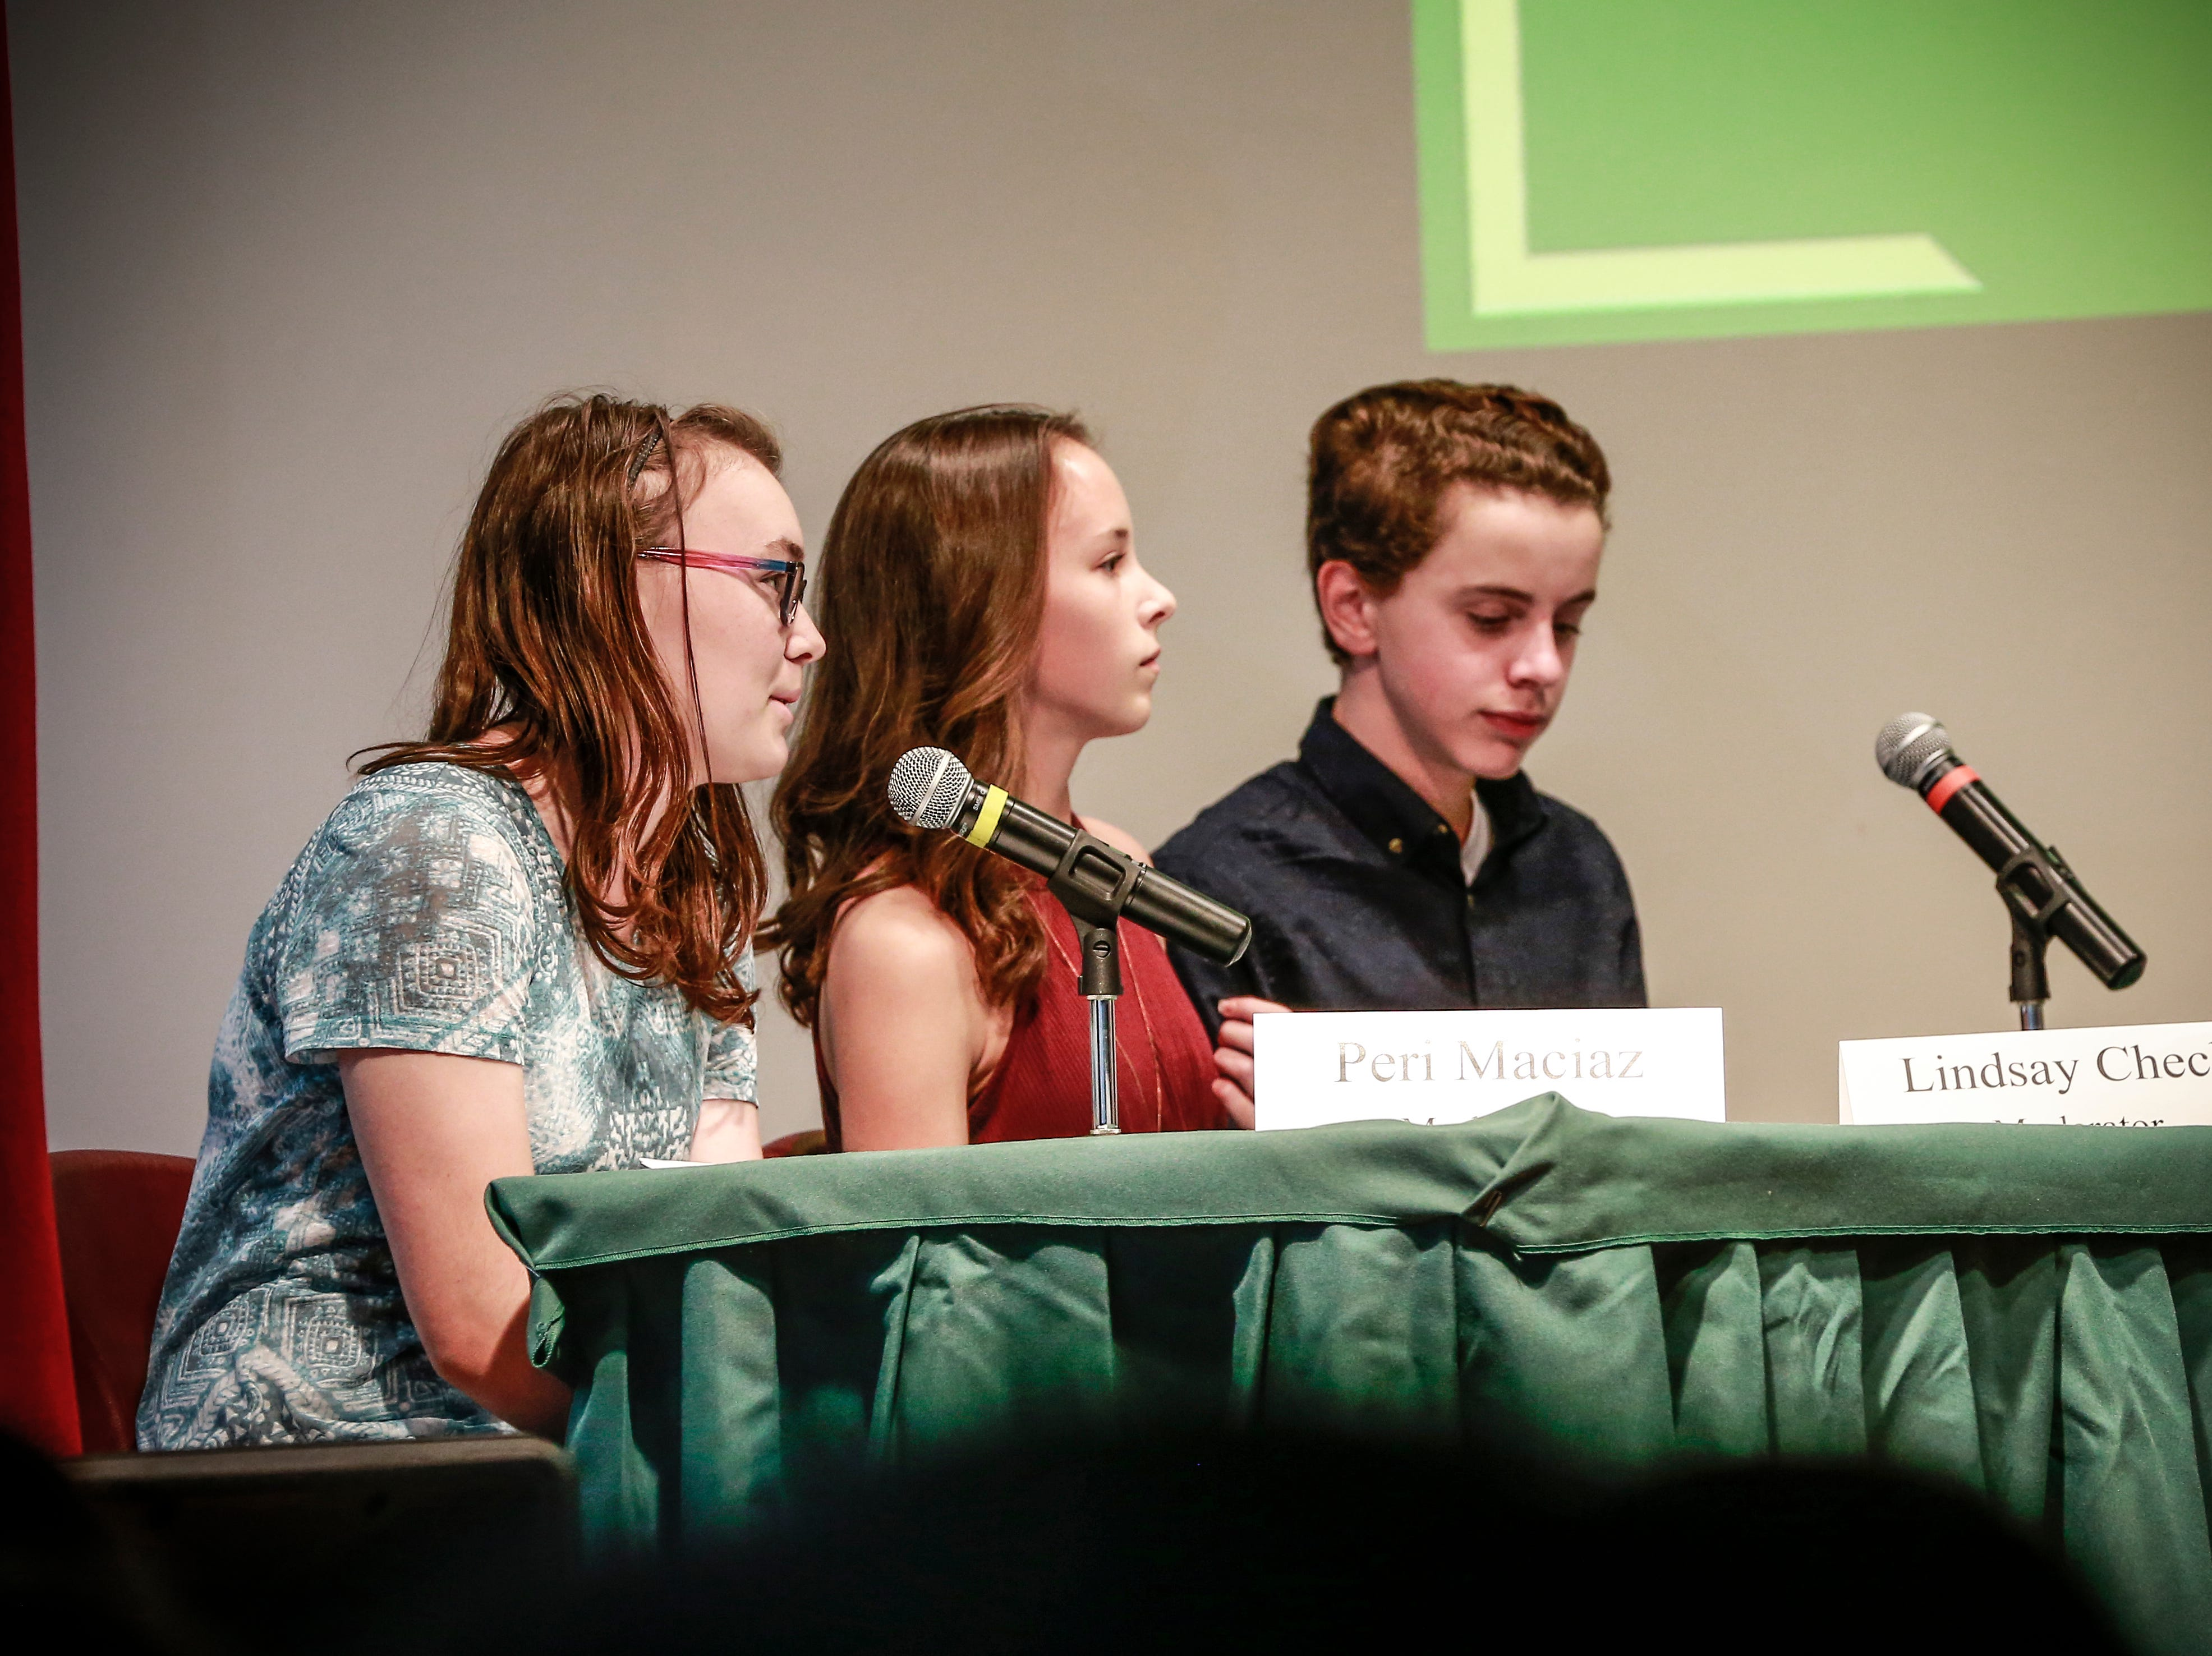 Moderators Peri Maciaz, left, Lindsay Check, and Aidan Morgan get their questions ready during the 9th grade Action Civics Political Forum Wednesday, Oct. 17, 2018, at D.C. Everest Junior High School auditorium in Weston, Wis. T'xer Zhon Kha/USA TODAY NETWORK-Wisconsin